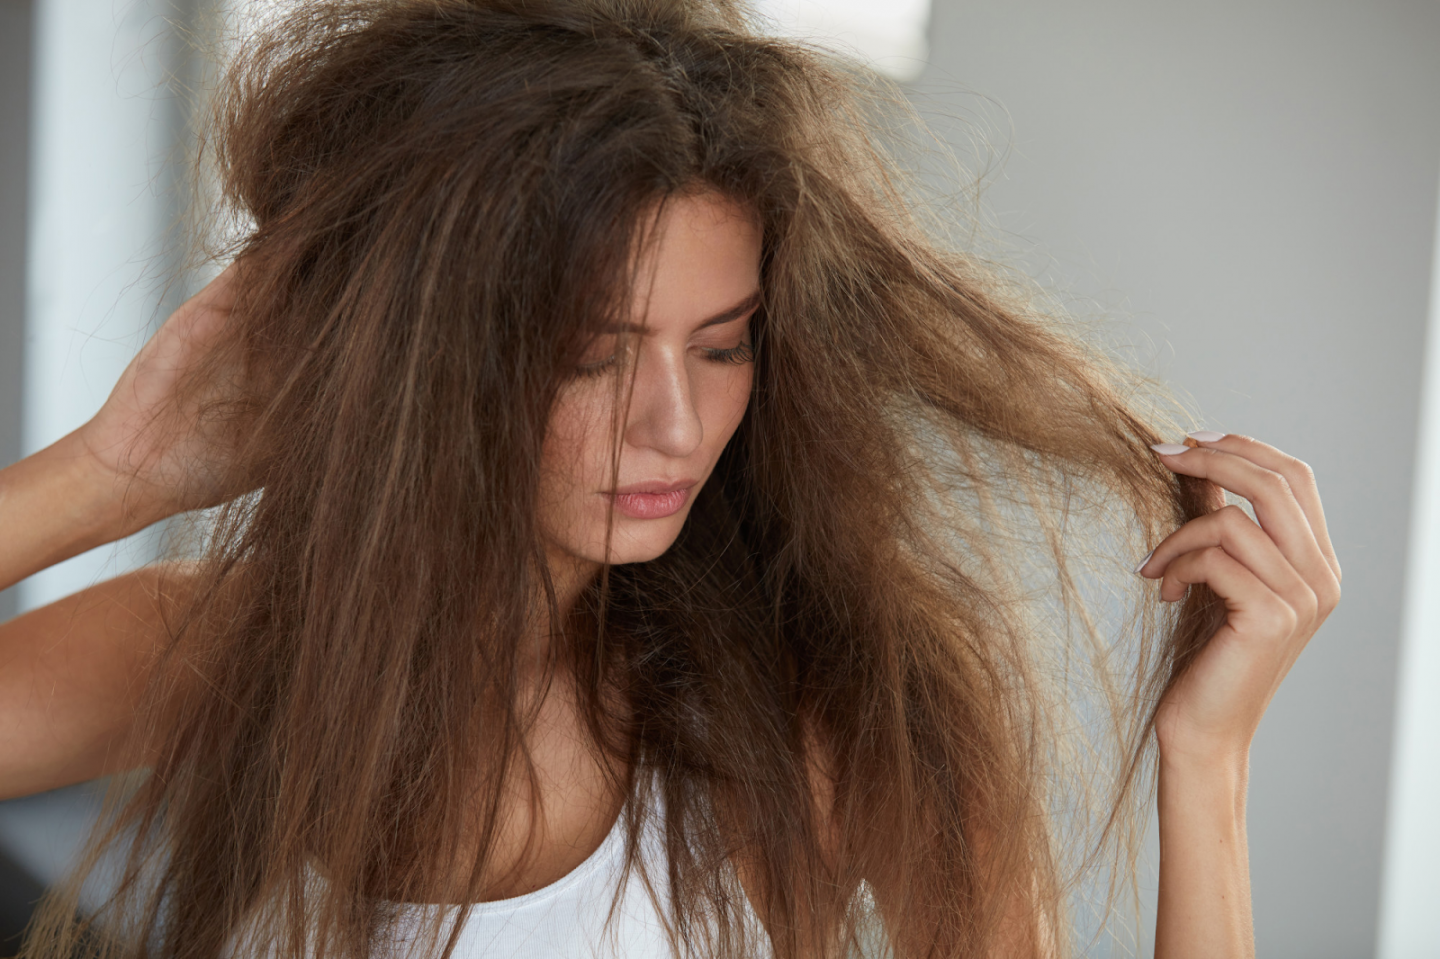 HOW TO GET RID OF FRIZZY HAIR FOR GOOD